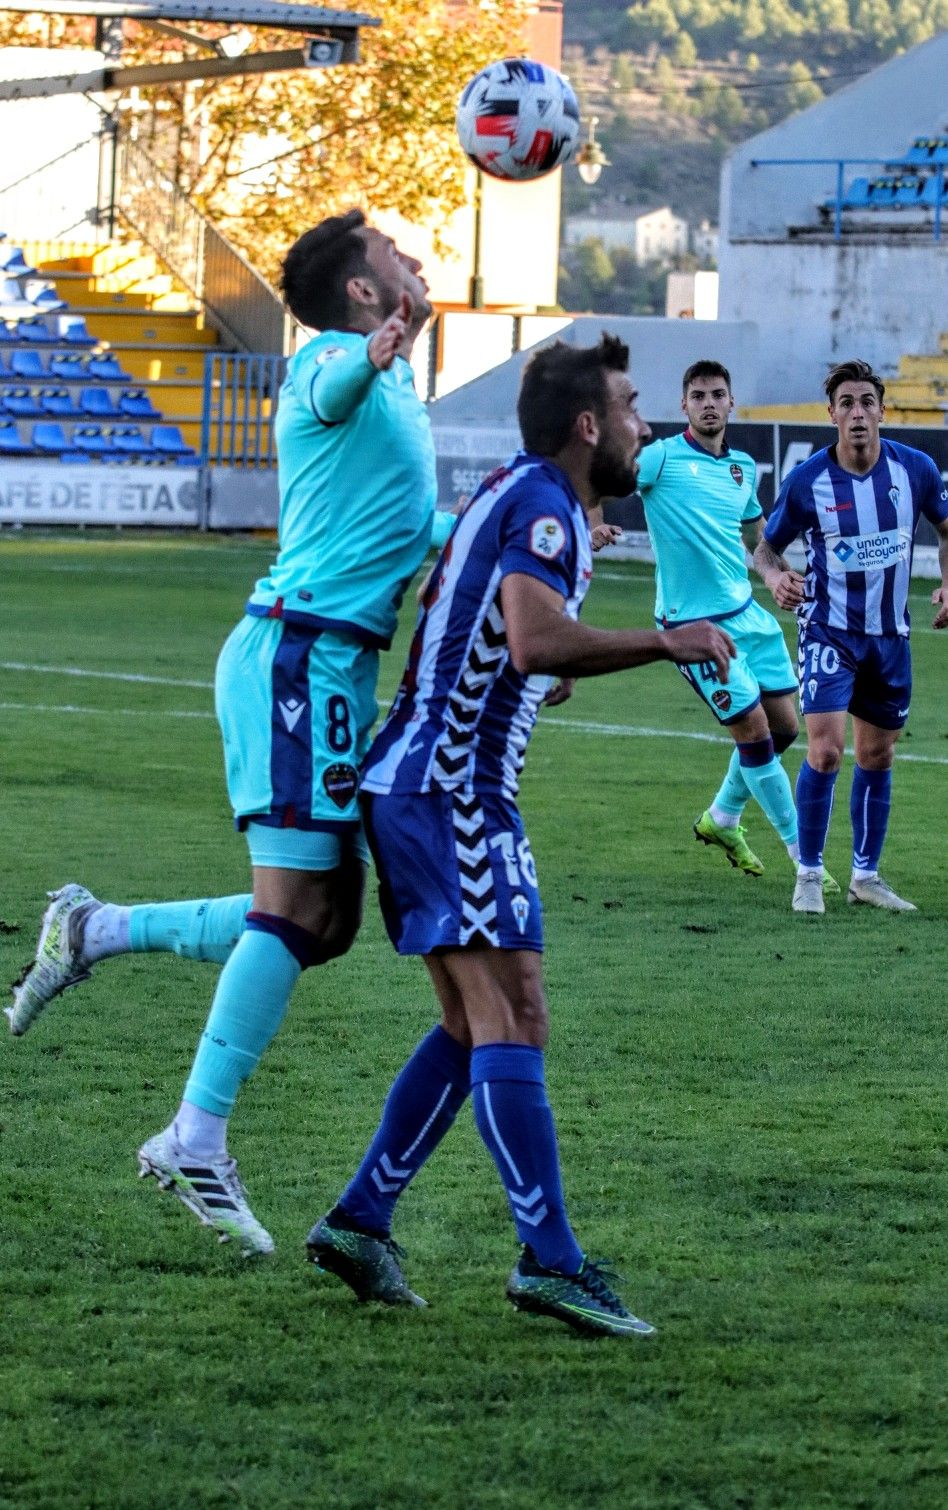 Alcoyano scores its first victory of the season (1-0)